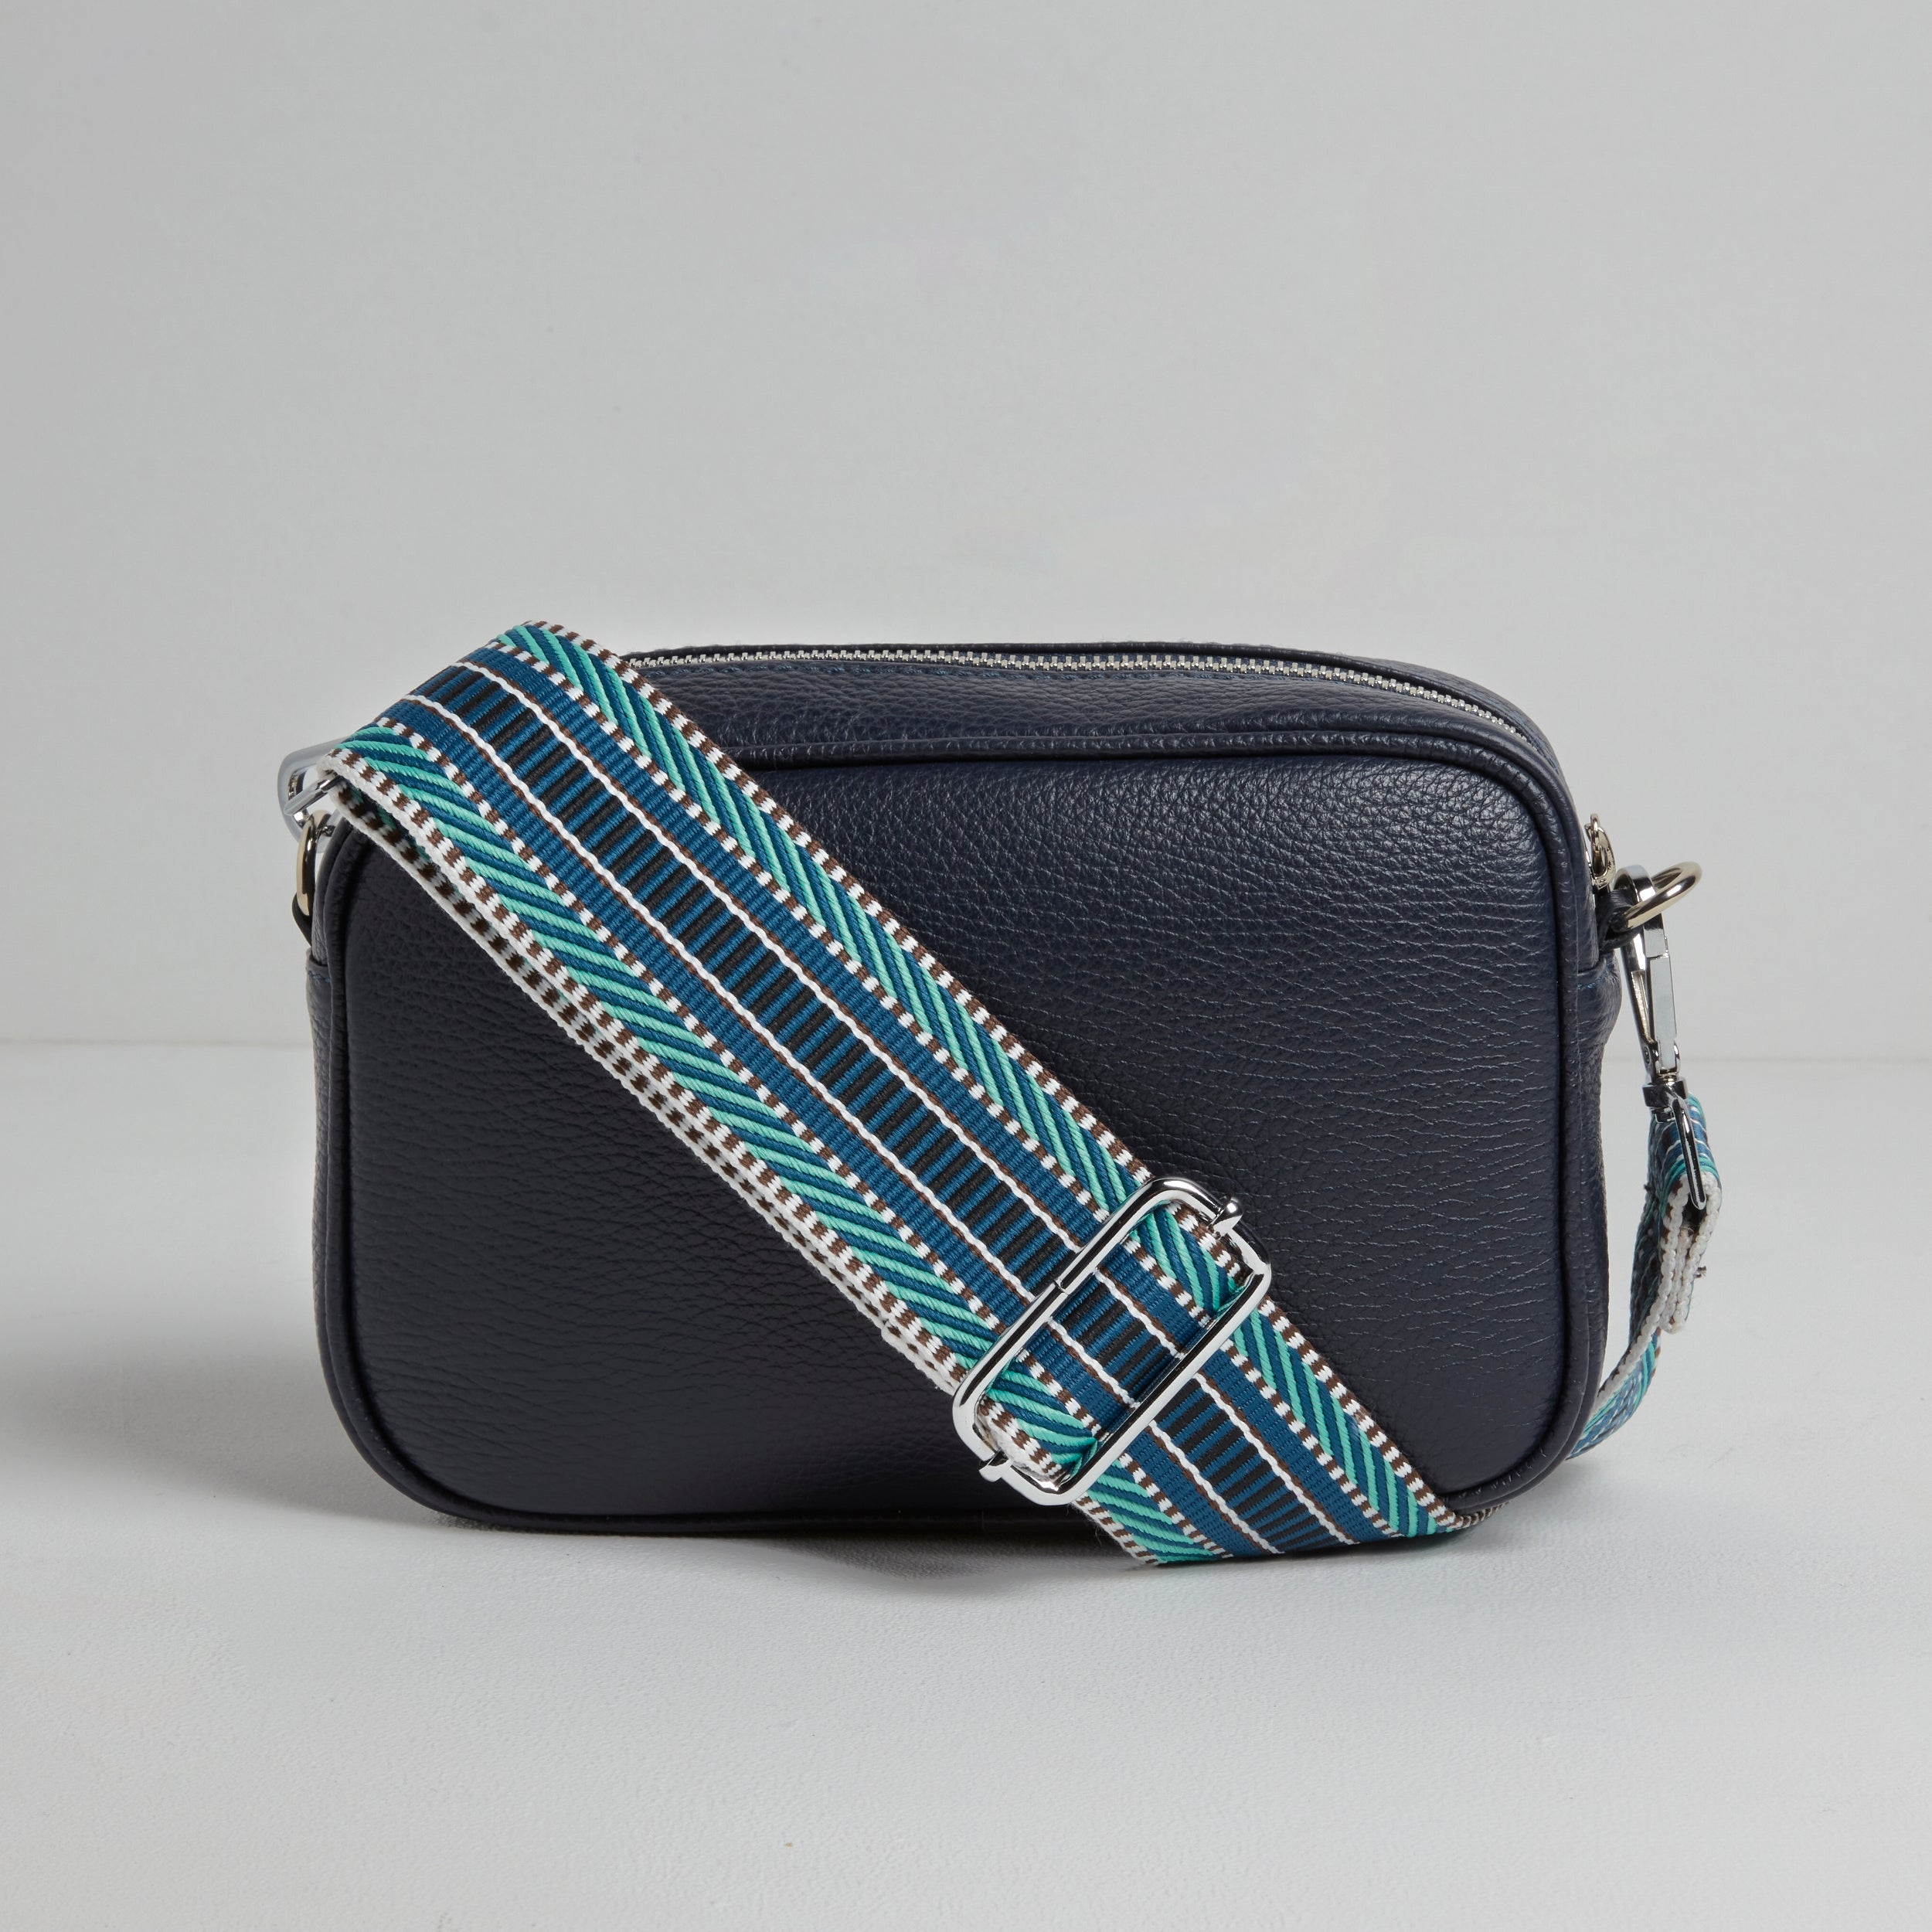 Crossbody Bag in Navy